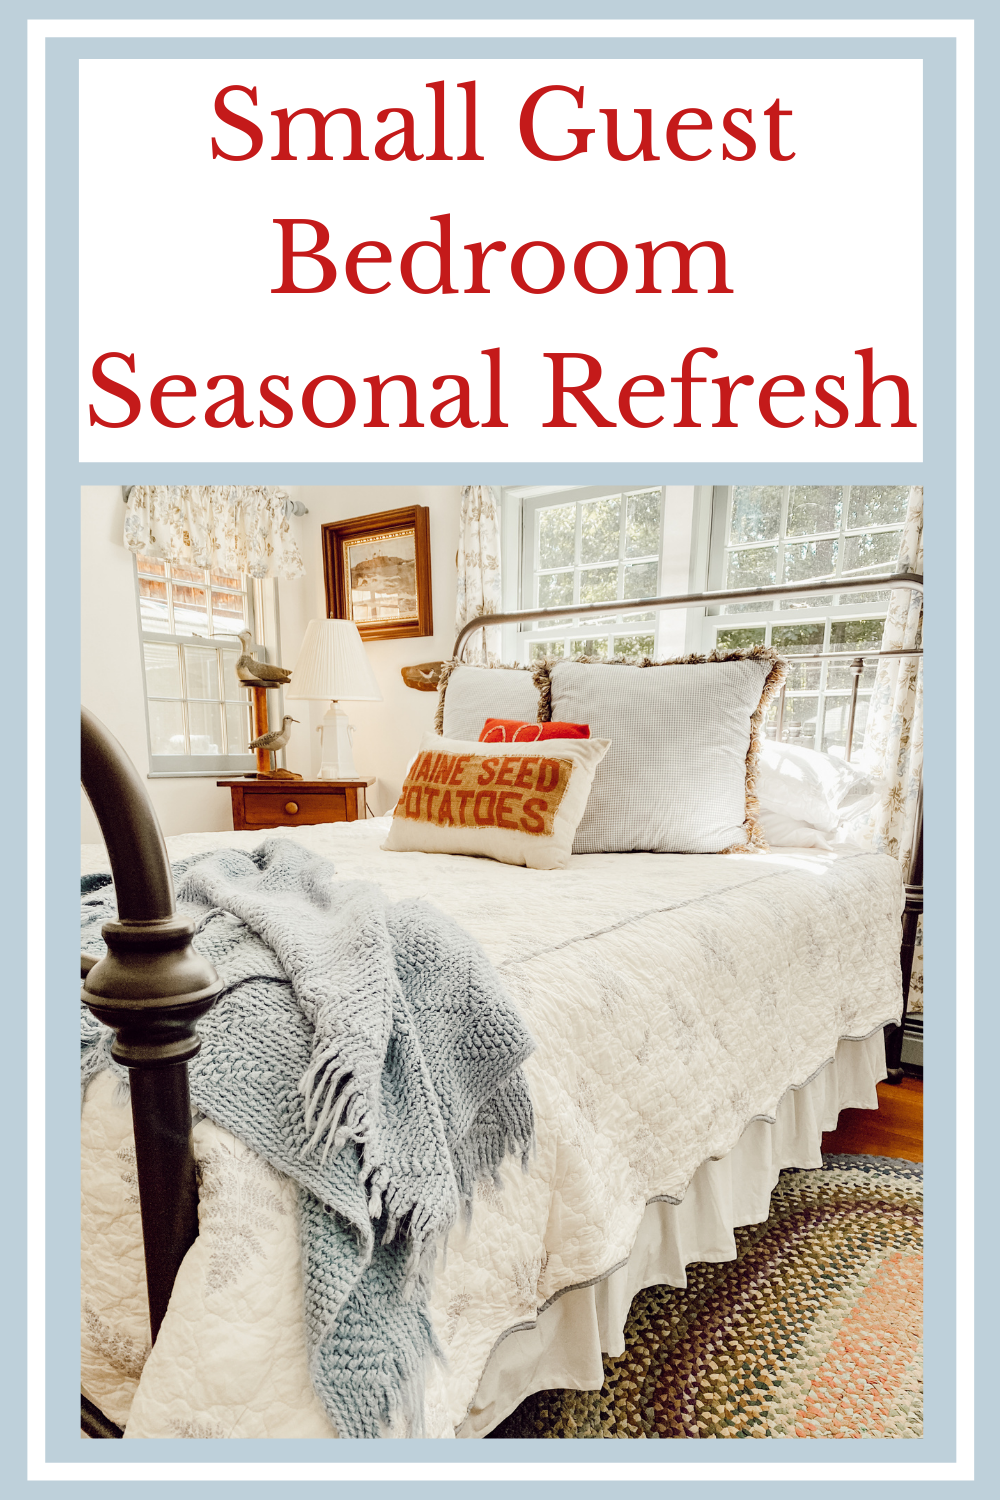 Small Guest Bedroom Seasonal Refresh